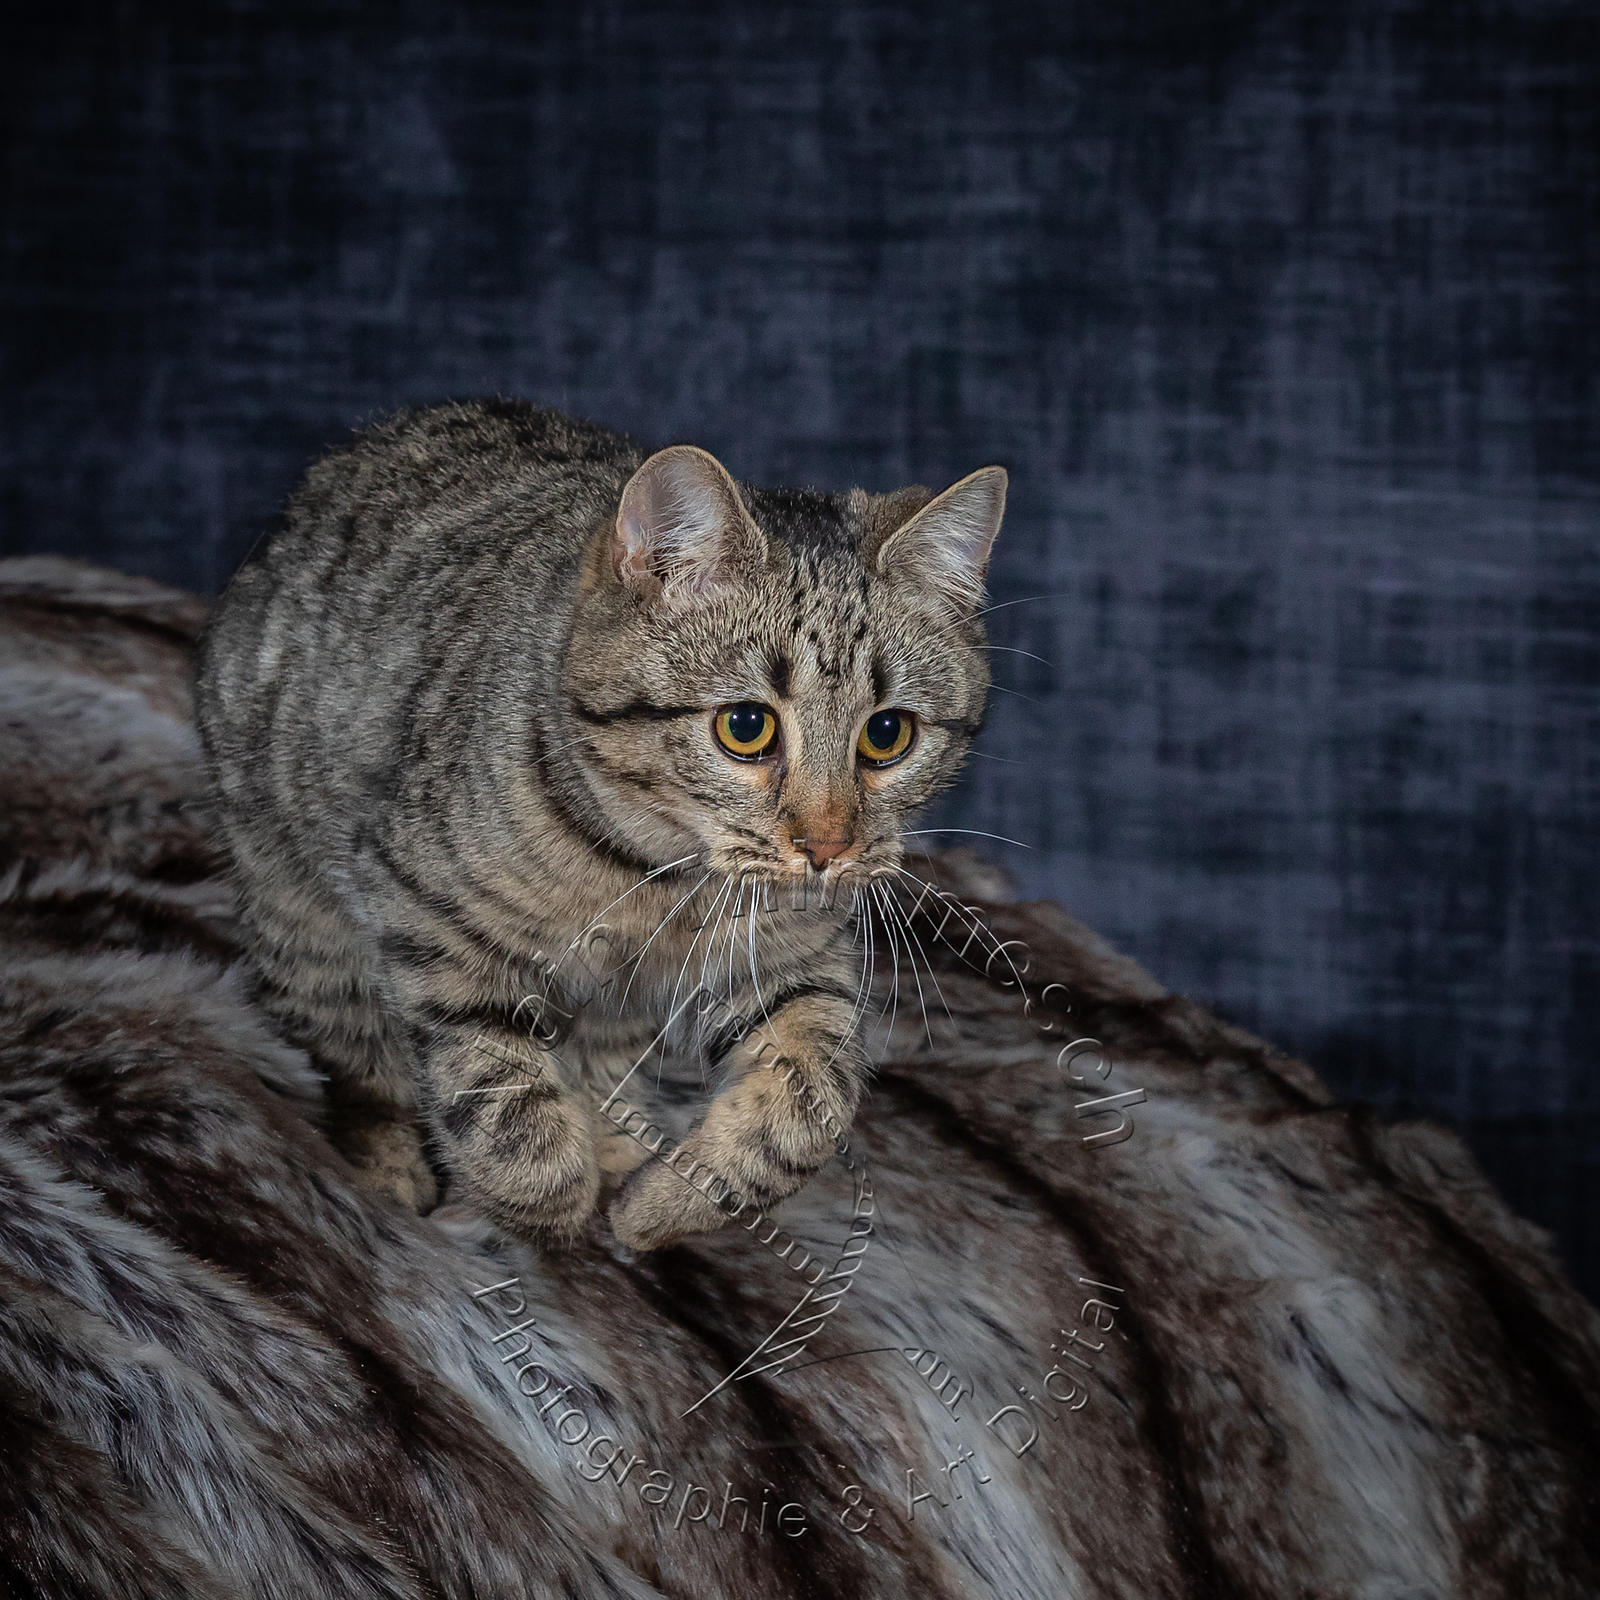 Photographie-Alain-Thimmesch-Chat-1090